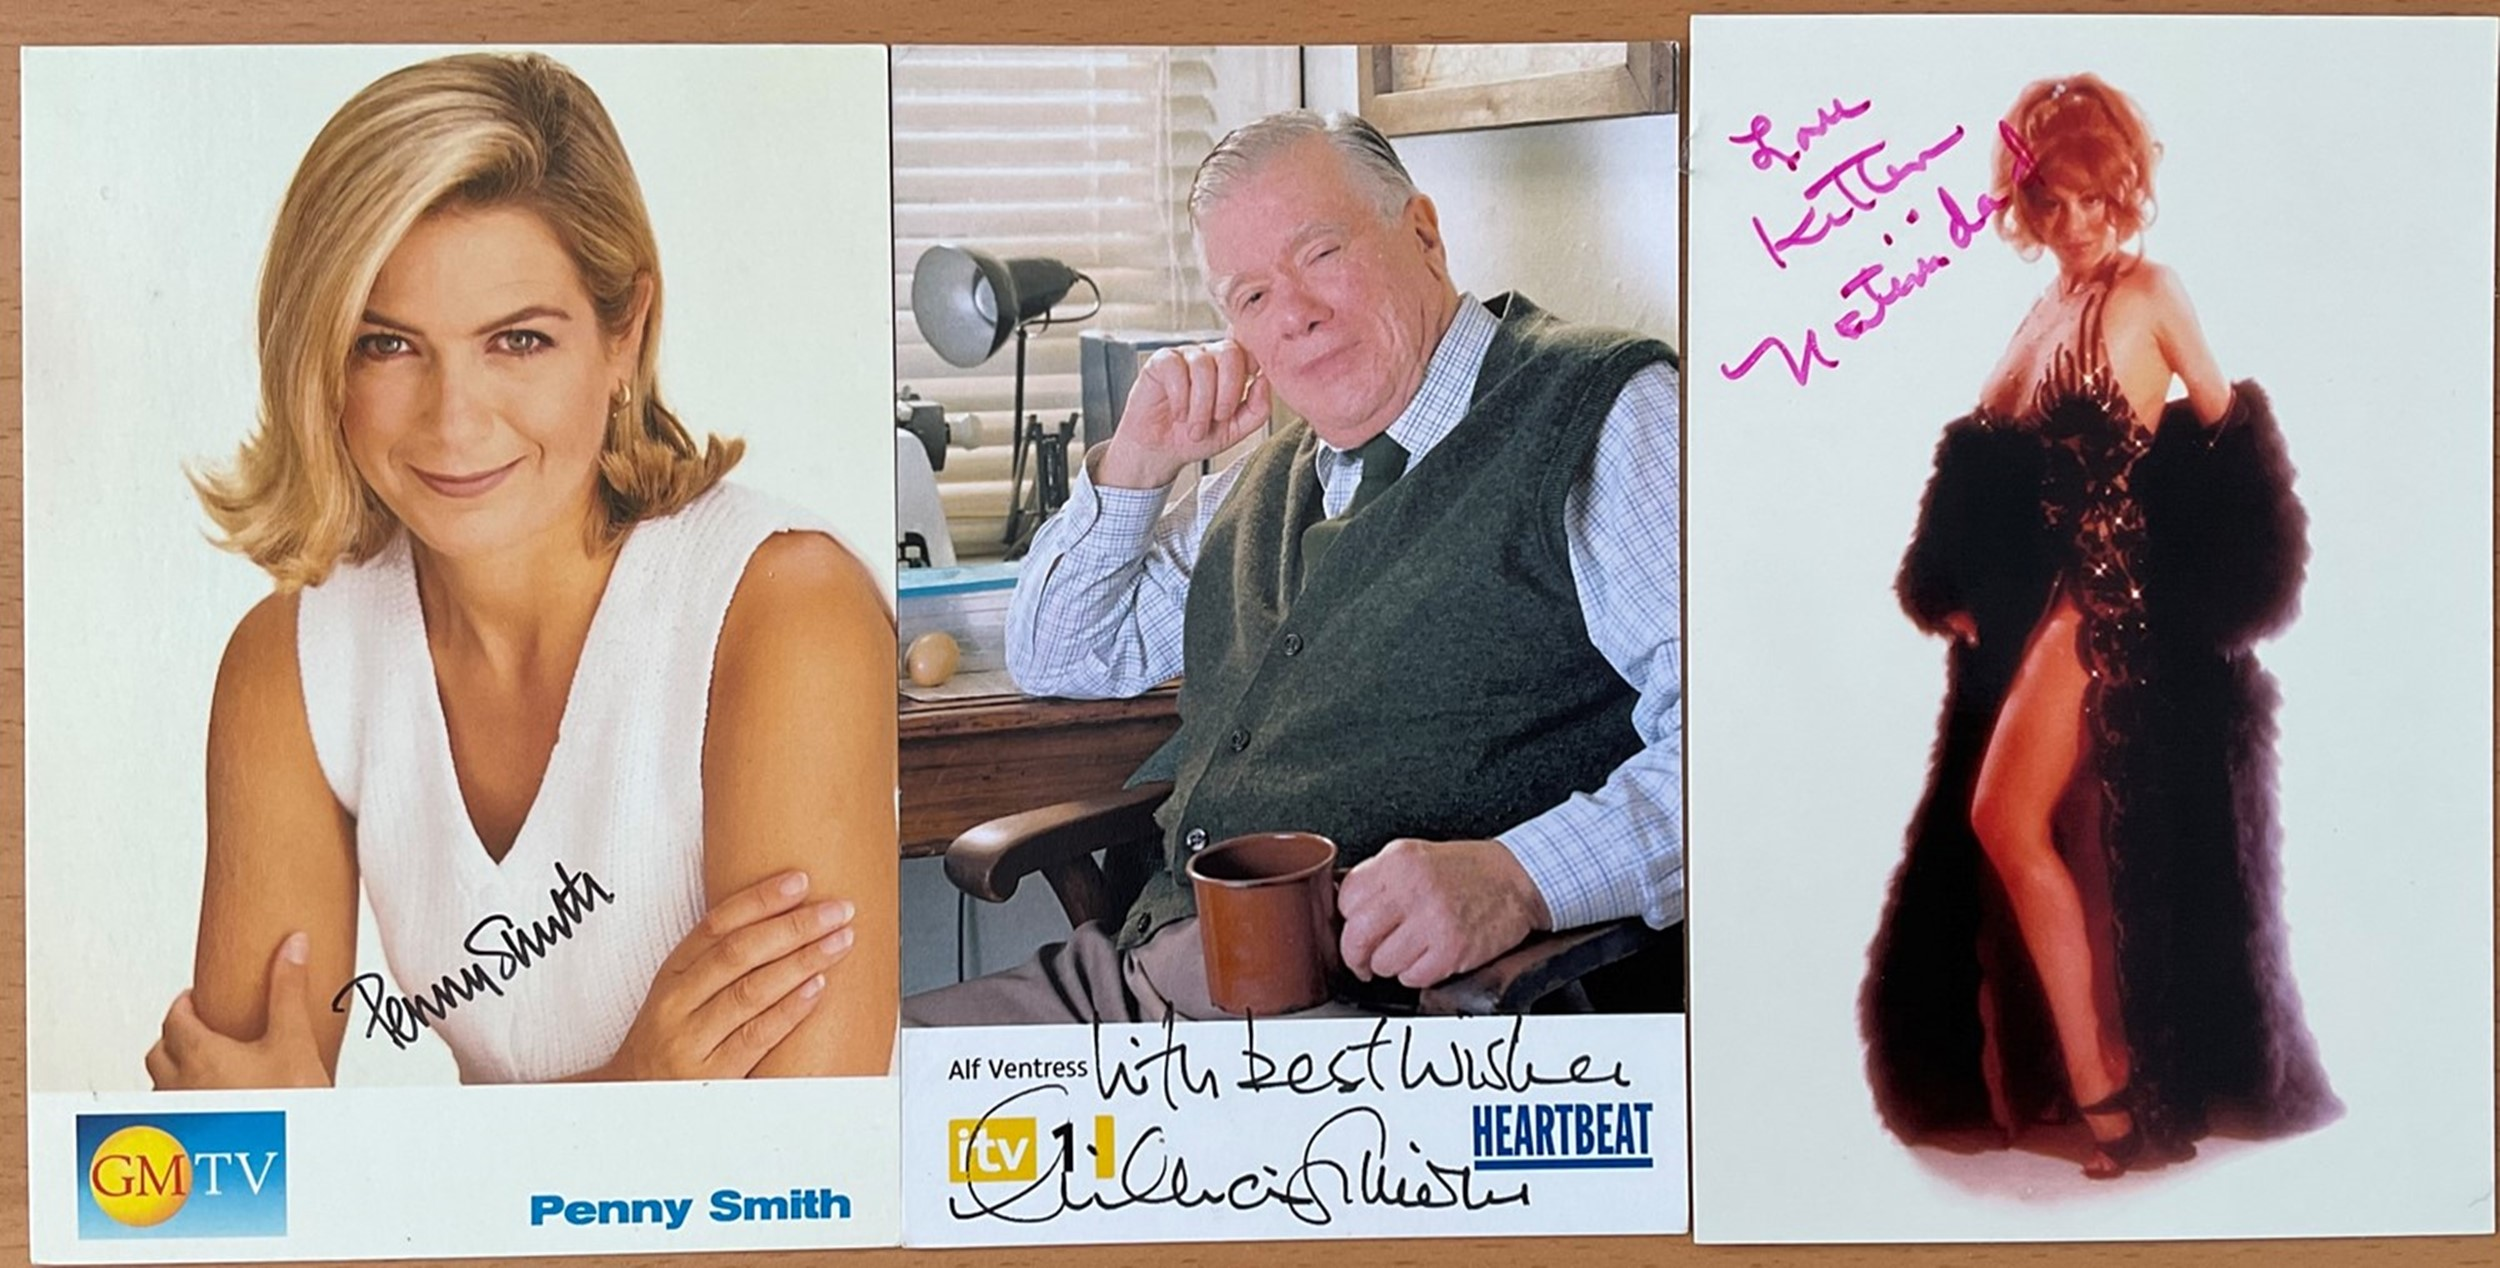 7 Signed TV and Film Stars Images Approx 6 x 3 Postcard Sized, Including Debra A Stevenson, Amanda - Image 2 of 2